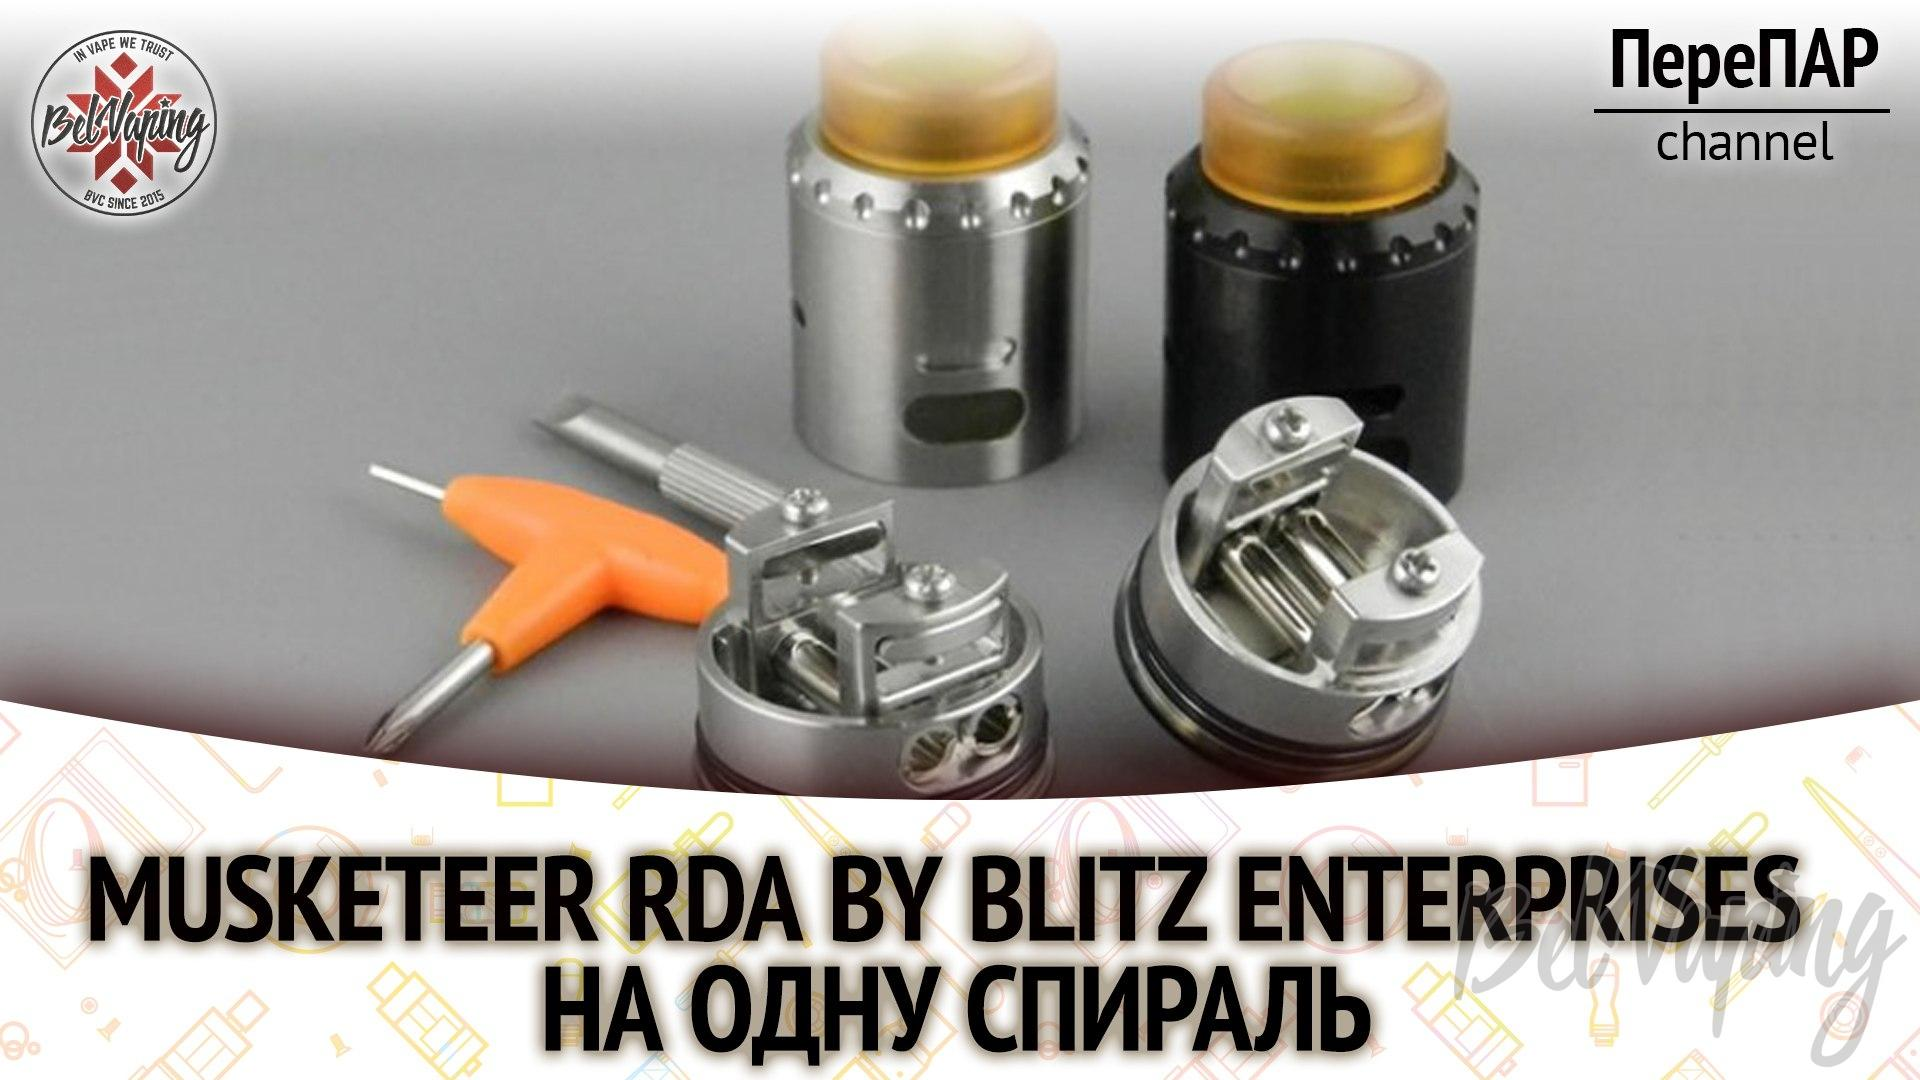 Дрипка Musketeer RDA от Blitz Enterprises на одну спираль